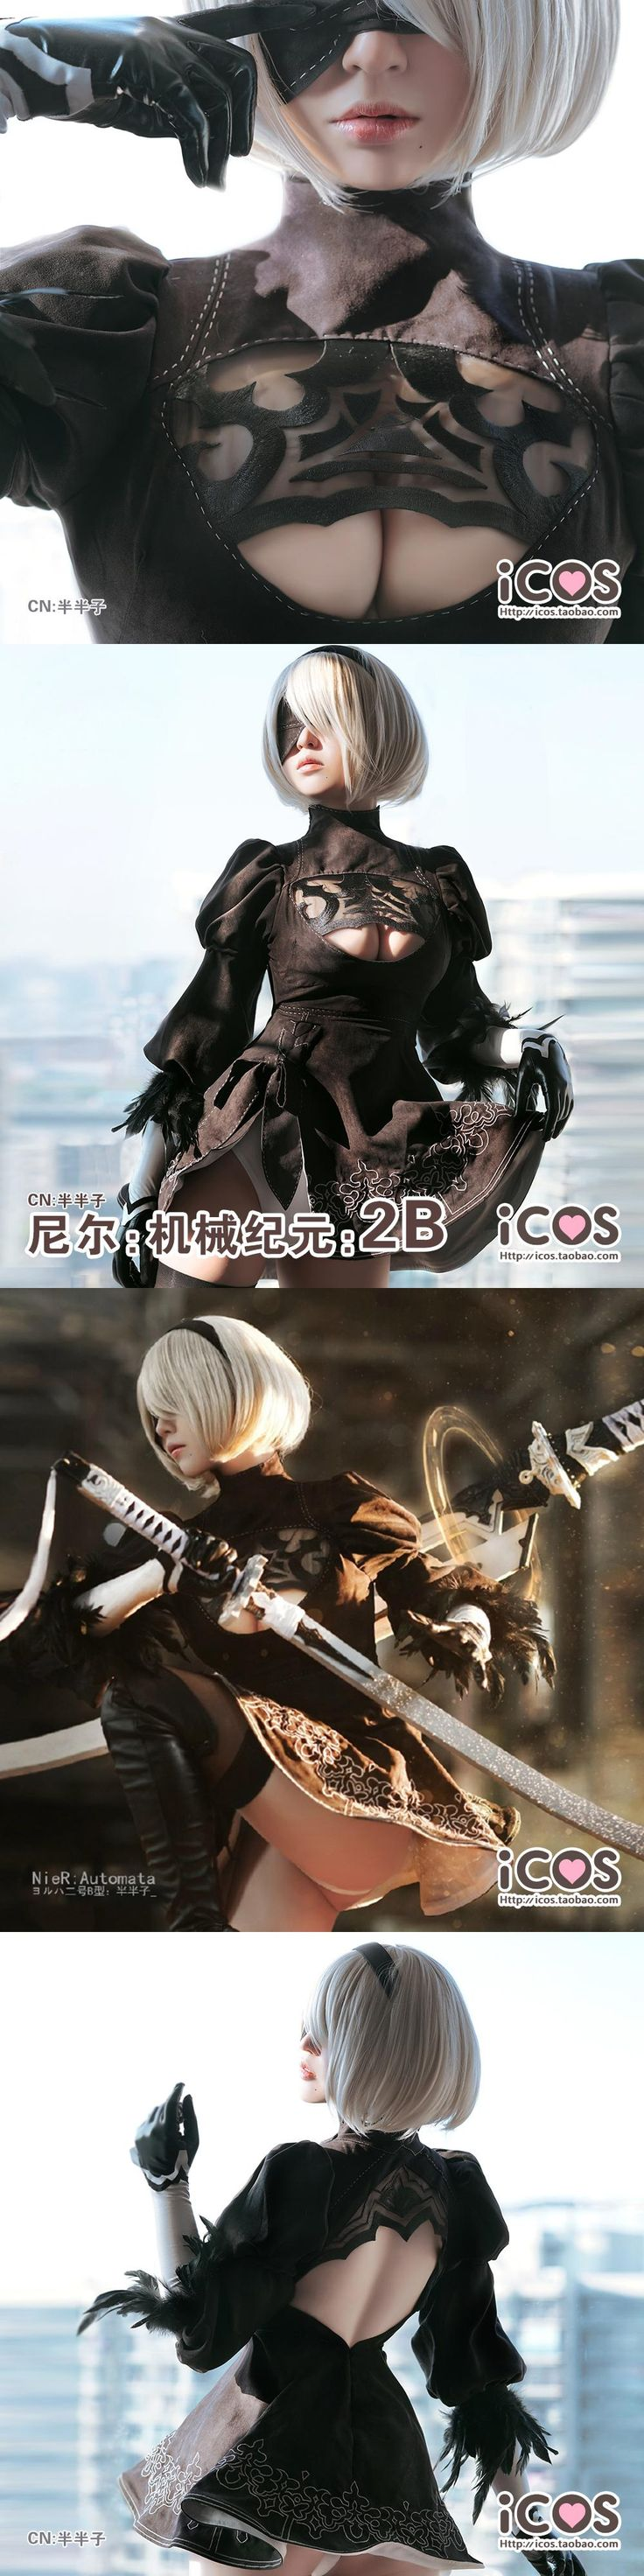 NieR:Automata Game heroine 2B Black Dress cosplay Costume Free Shipping